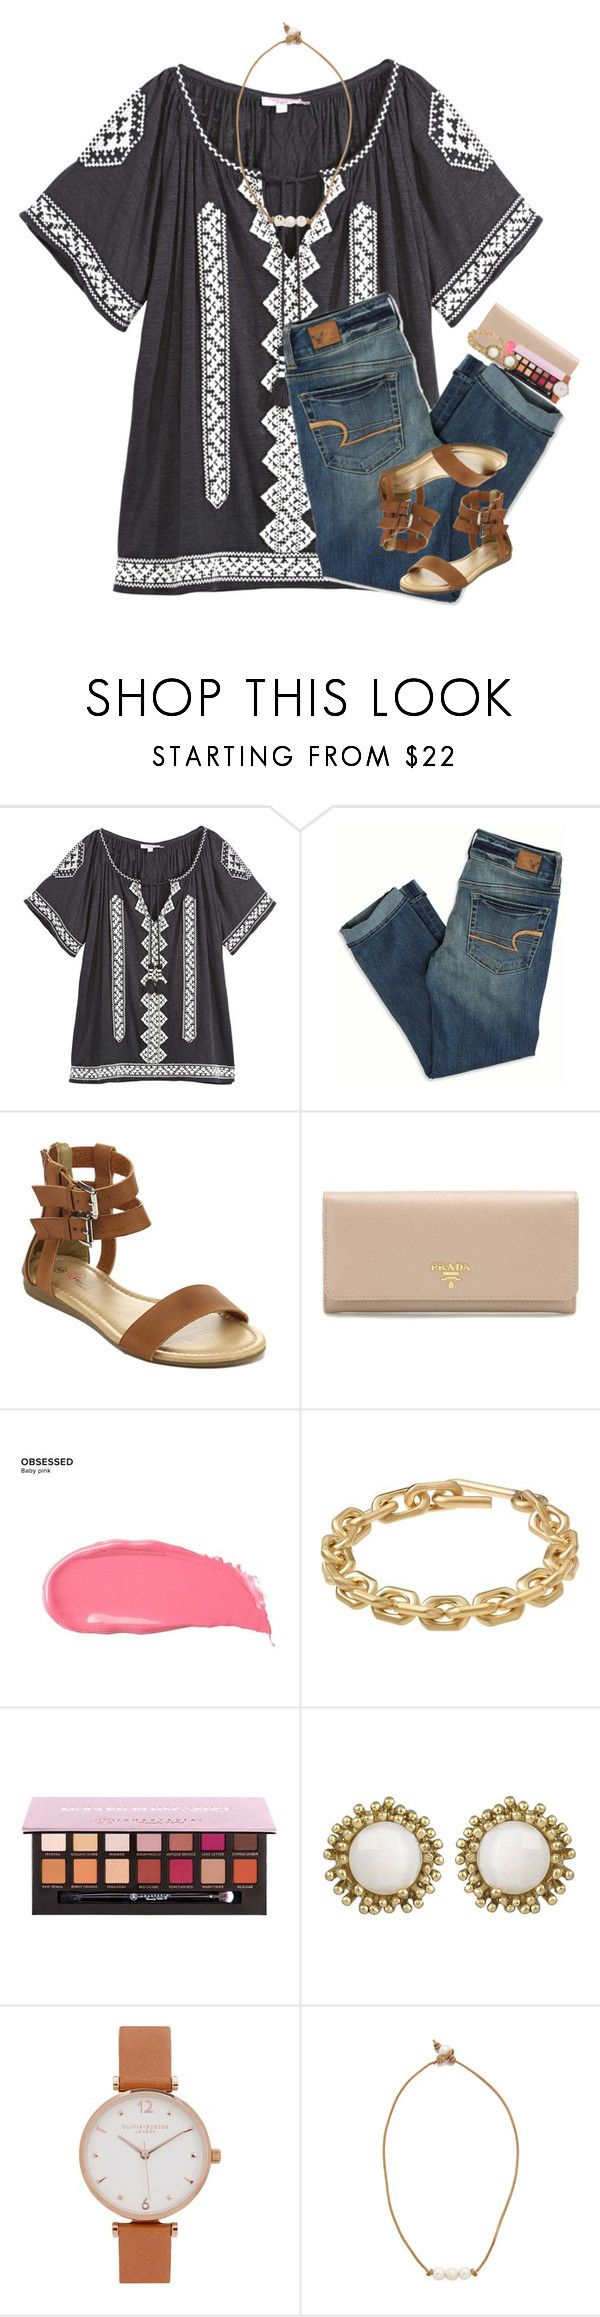 """""""is it possible to get 2k by Christmas? pretty please with a cherry on top?"""" by evieleet ❤ liked on Polyvore featuring Calypso St. Barth, American Eagle Outfitters, Prada, Urban Decay, Calvin Klein, Anastasia Beverly Hills, Kendra Scott, Olivia Burton and Lead"""